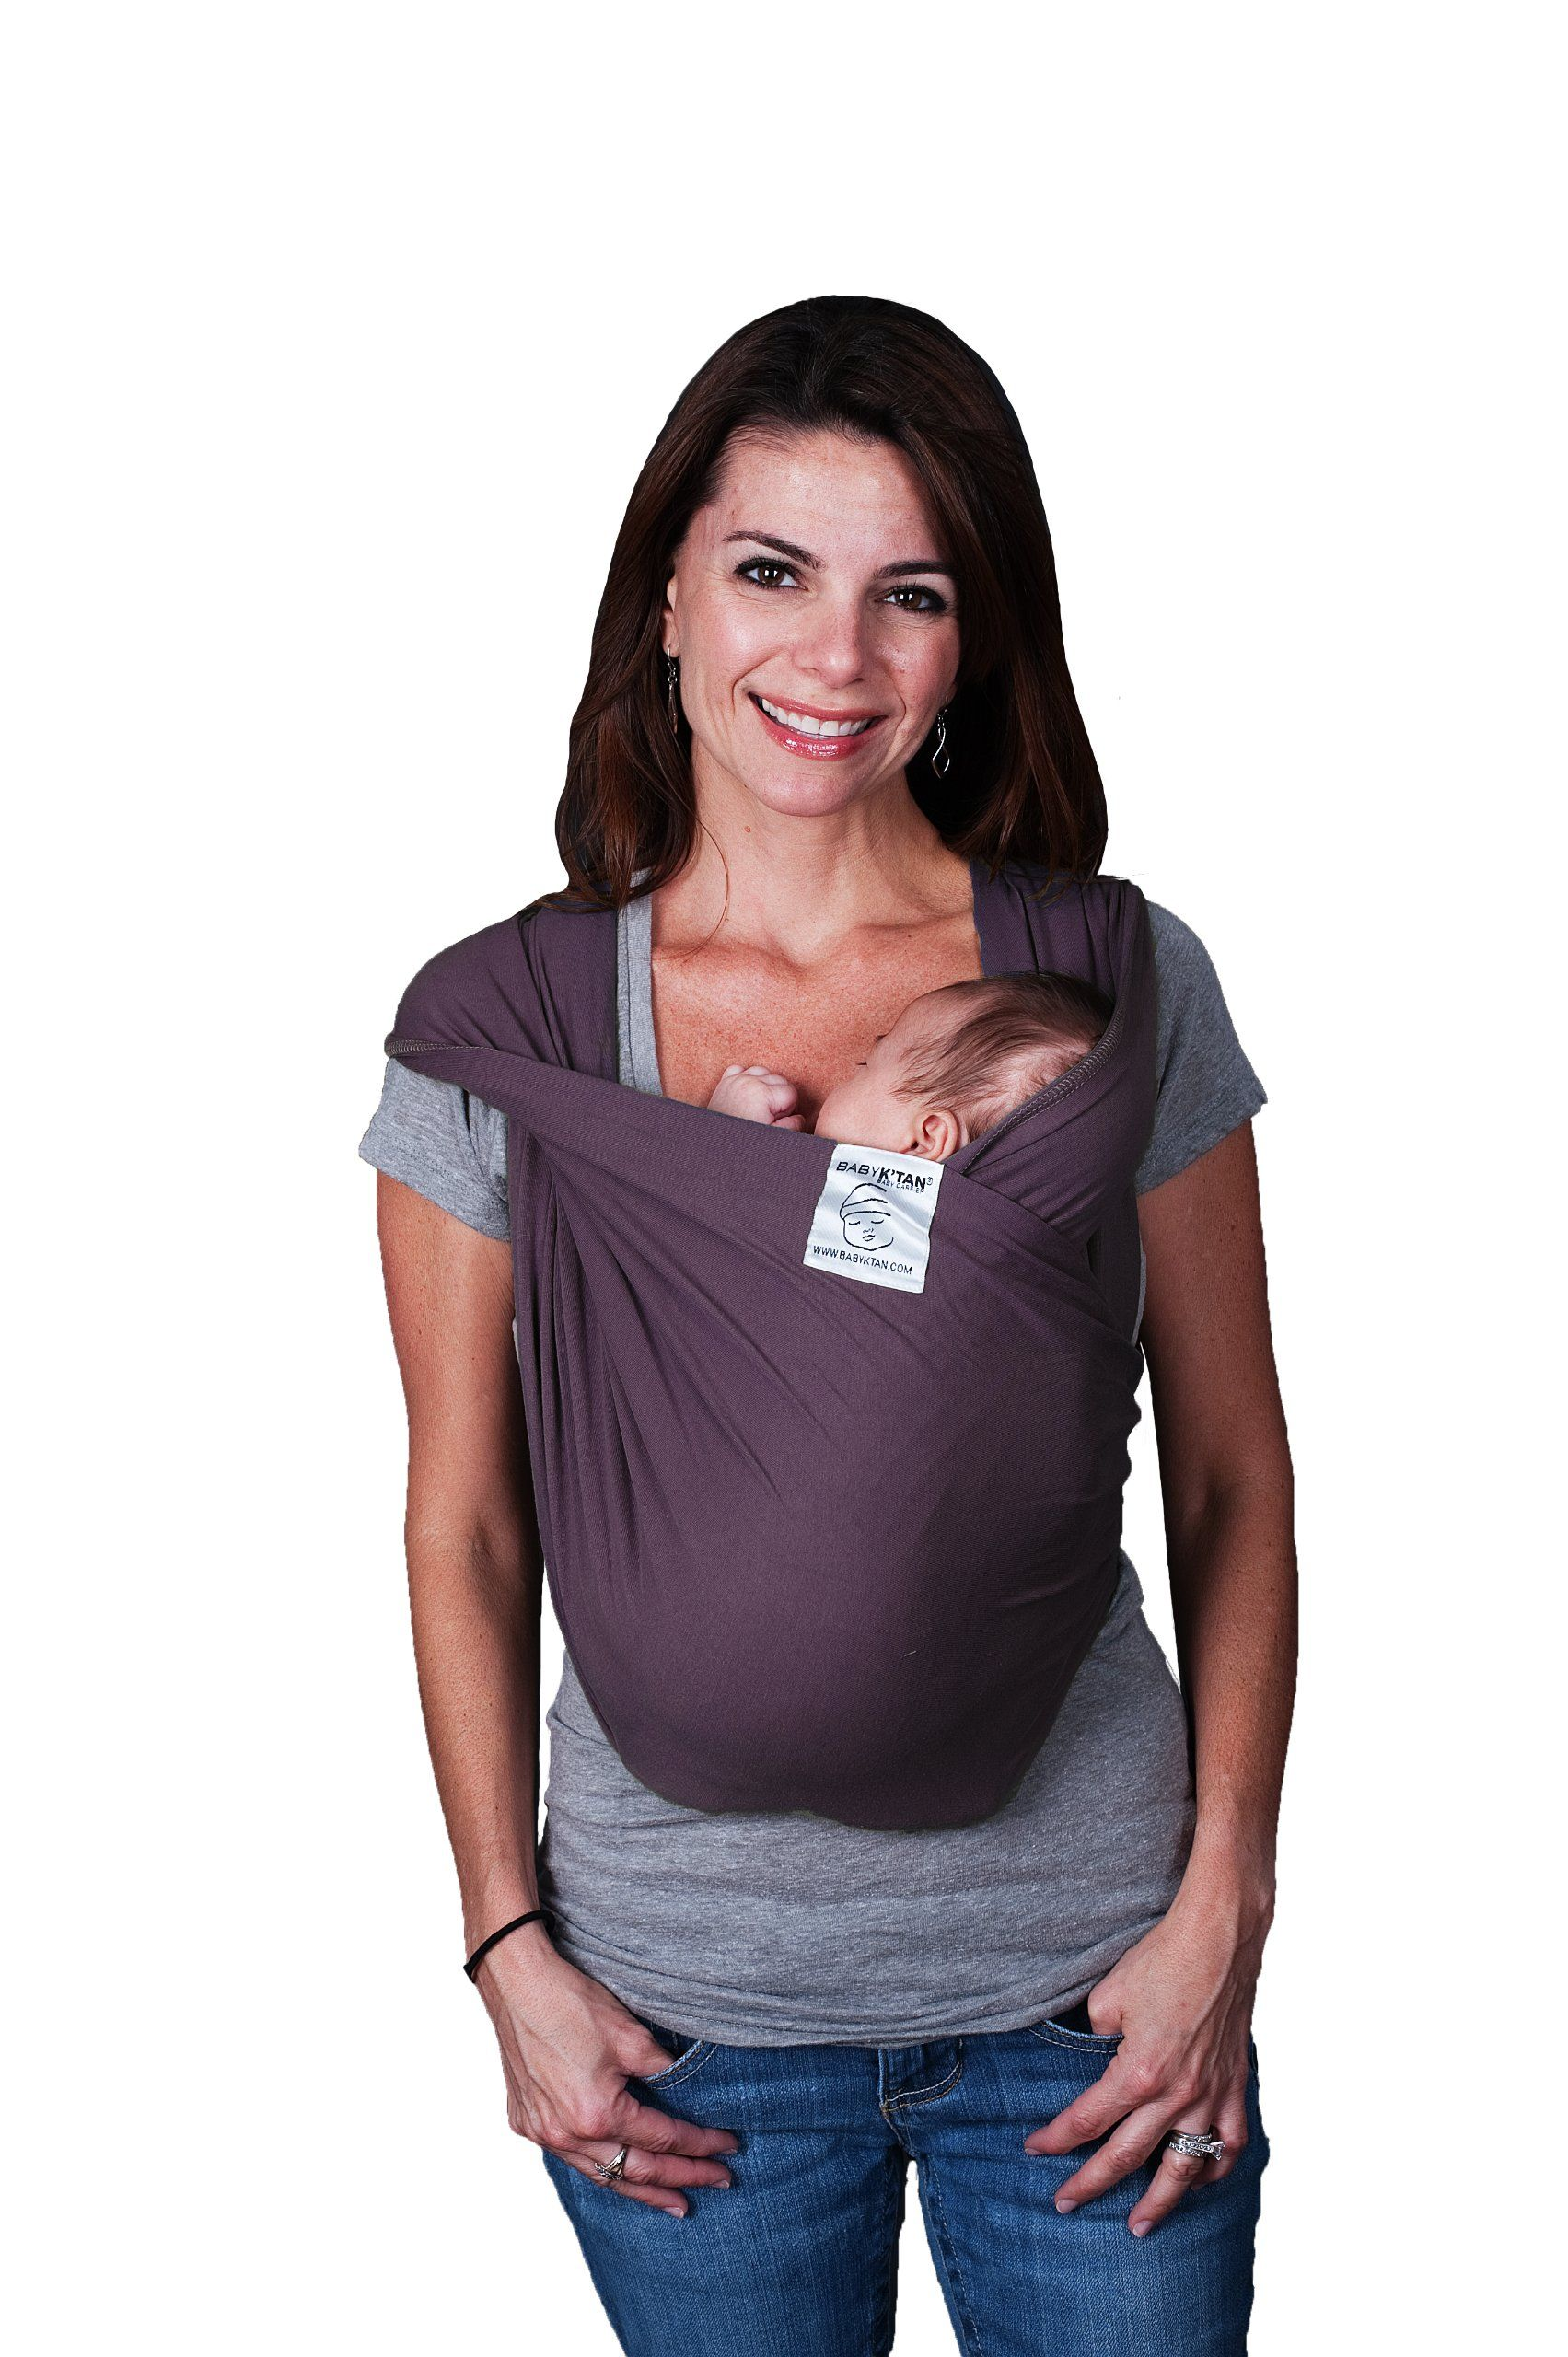 Baby K Tan Baby Carrier The Best Baby Wrap It S Much Easier To